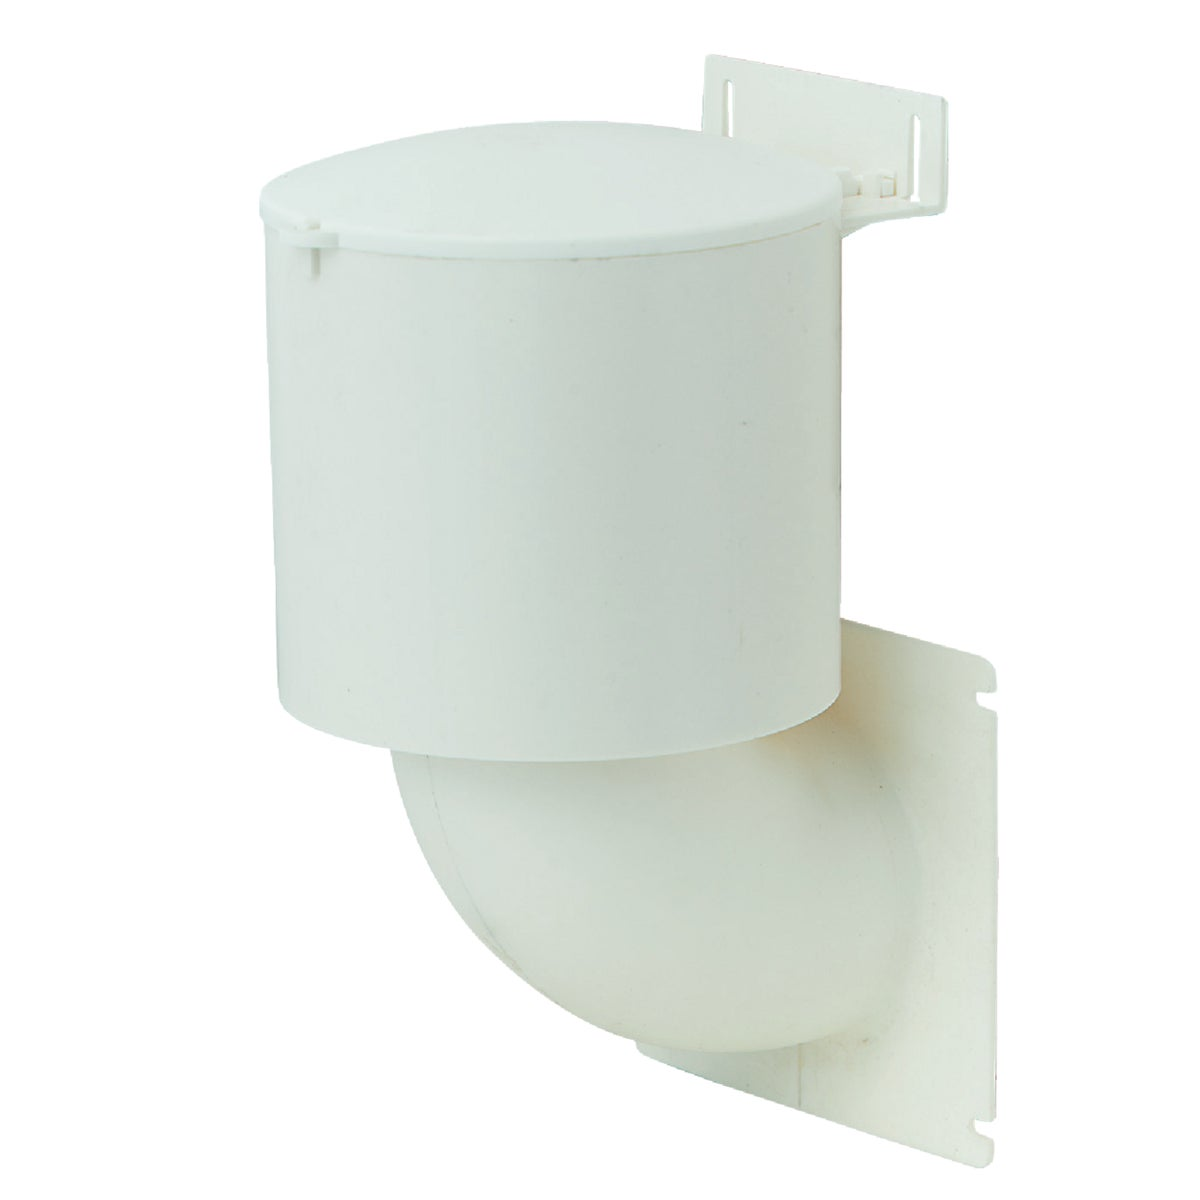 ULTRASEAL DRYER VENT - 289W by Lambro Industries